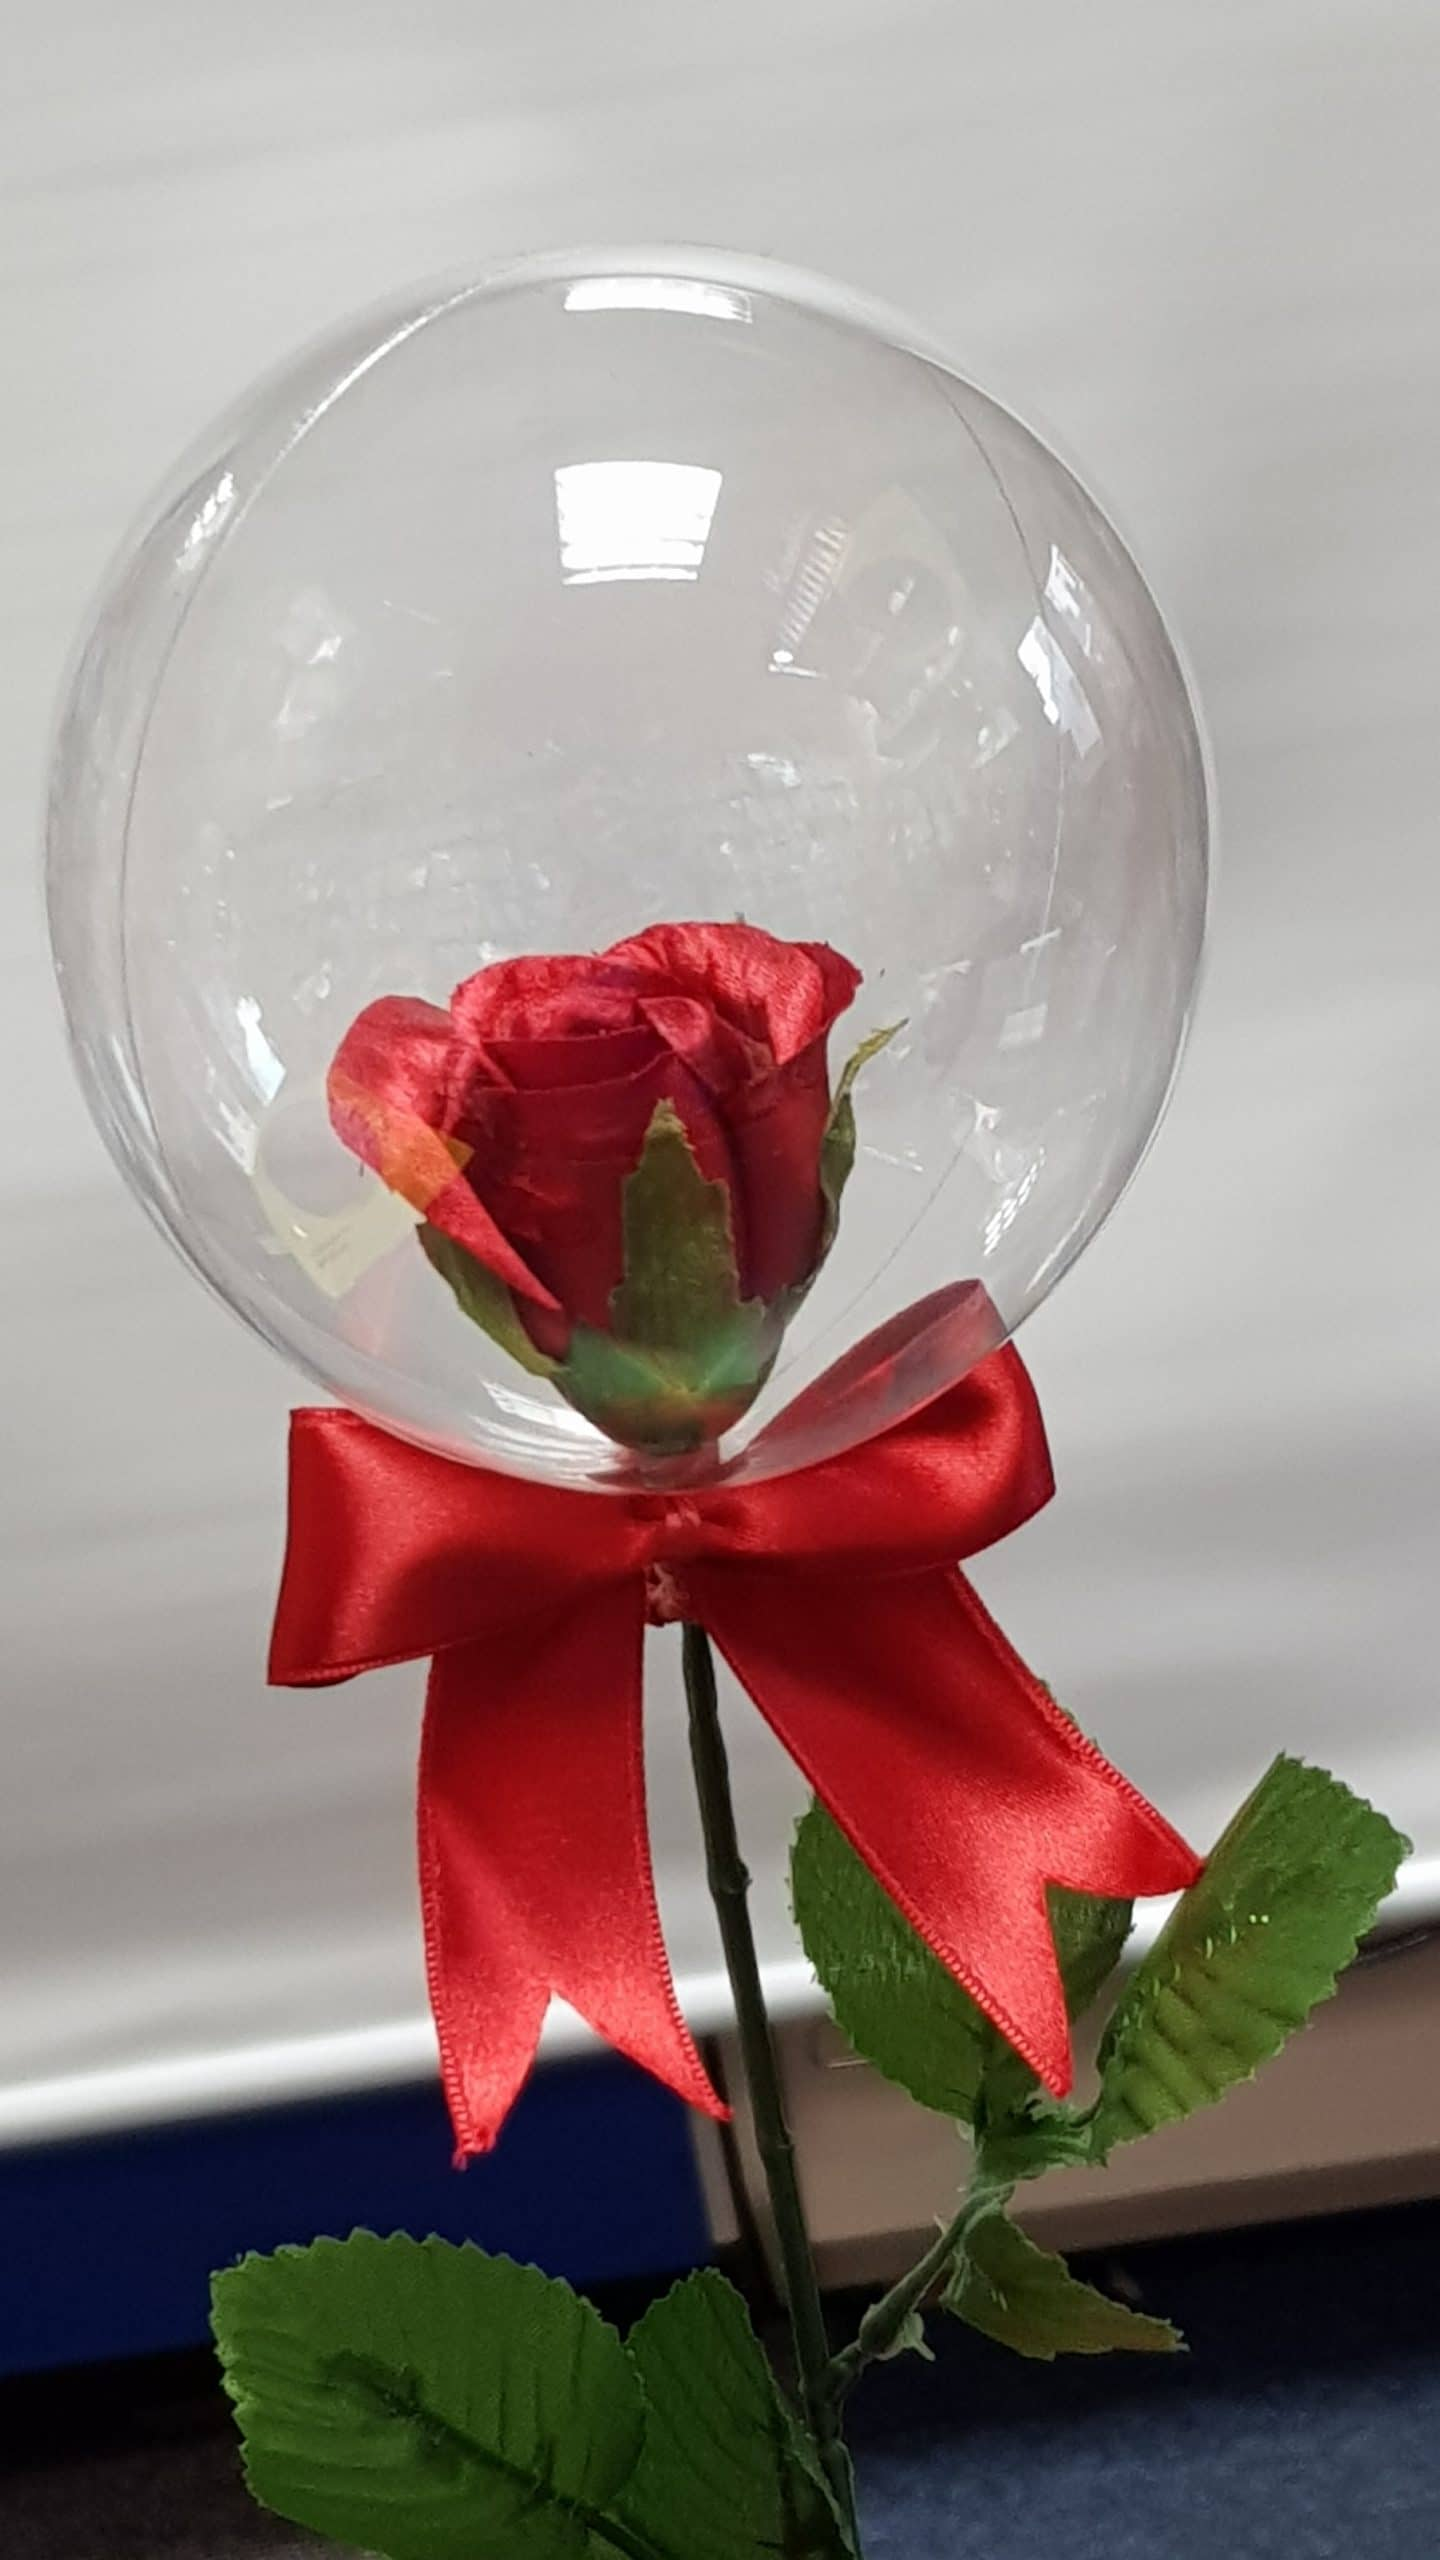 Balloon Rose available from Cardiff Balloons